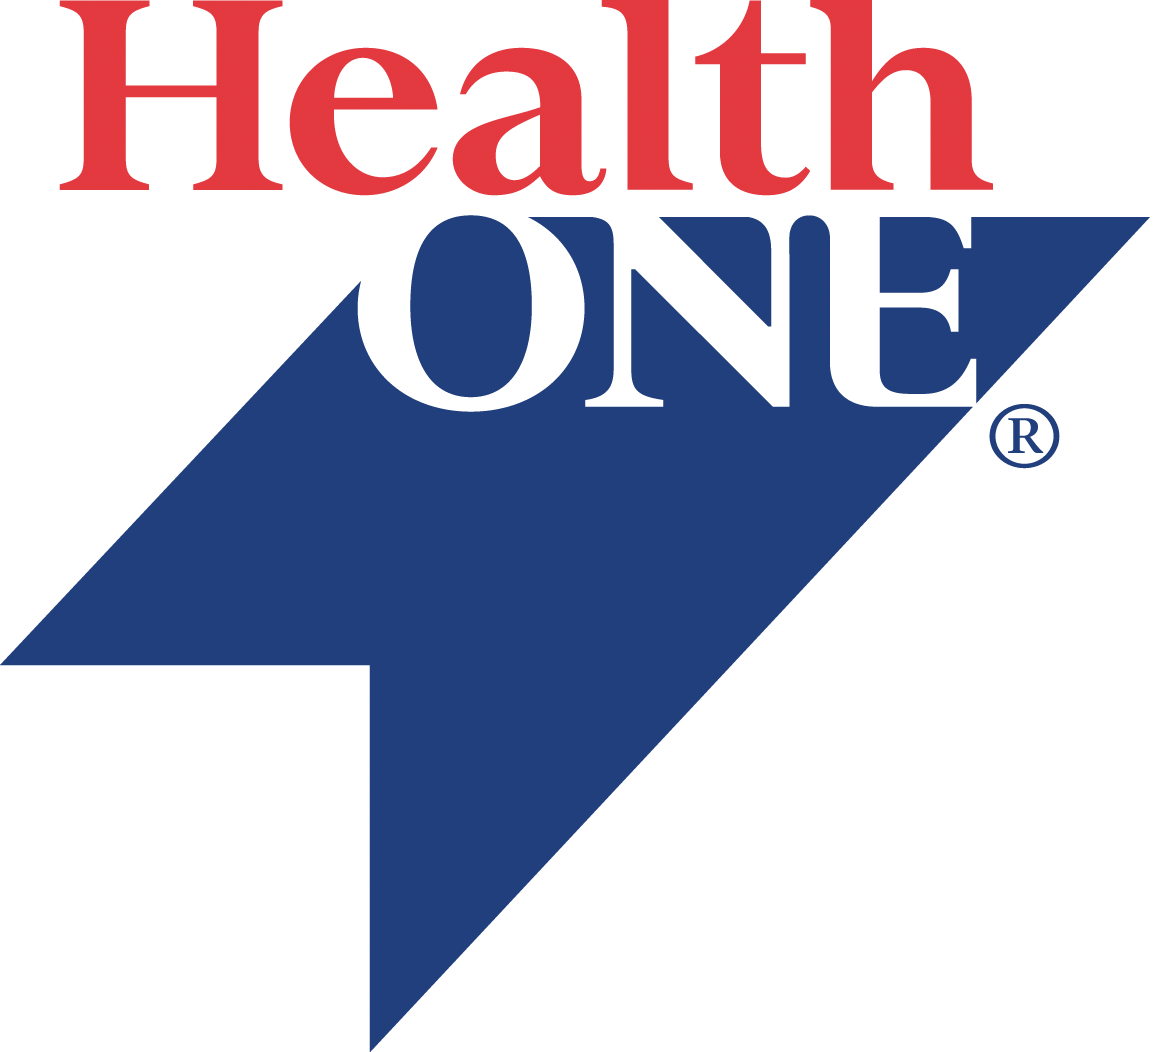 HealthONE Denver